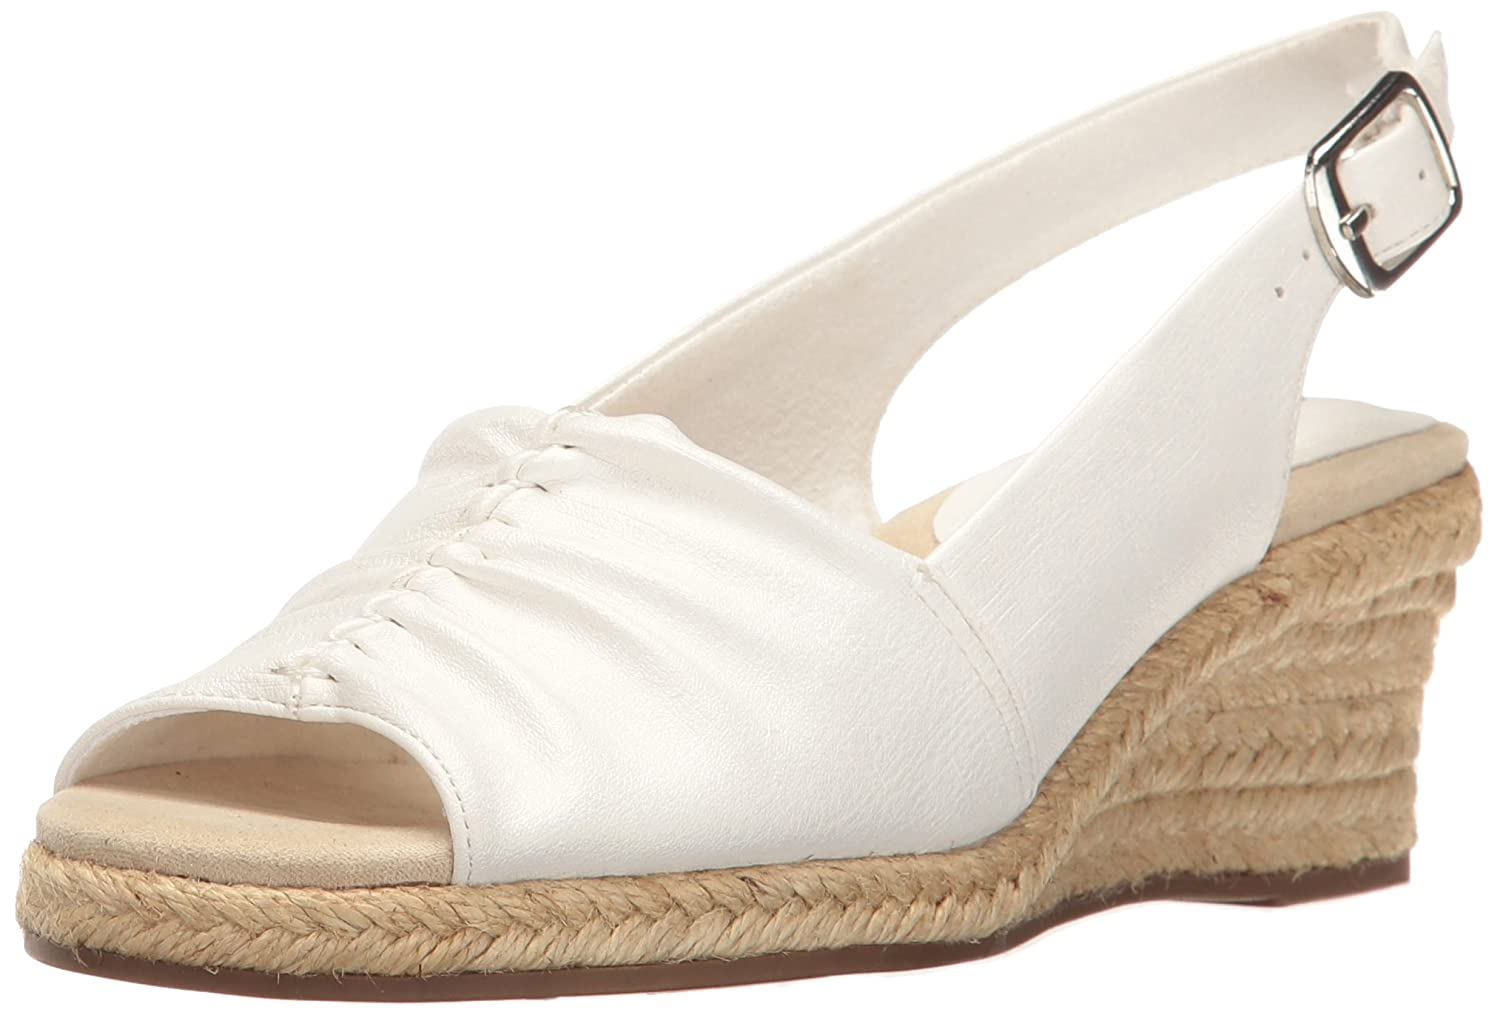 Easy Street Women's Kindly Espadrille Wedge Sandal B01N2N89M7 9 N US|White Textured